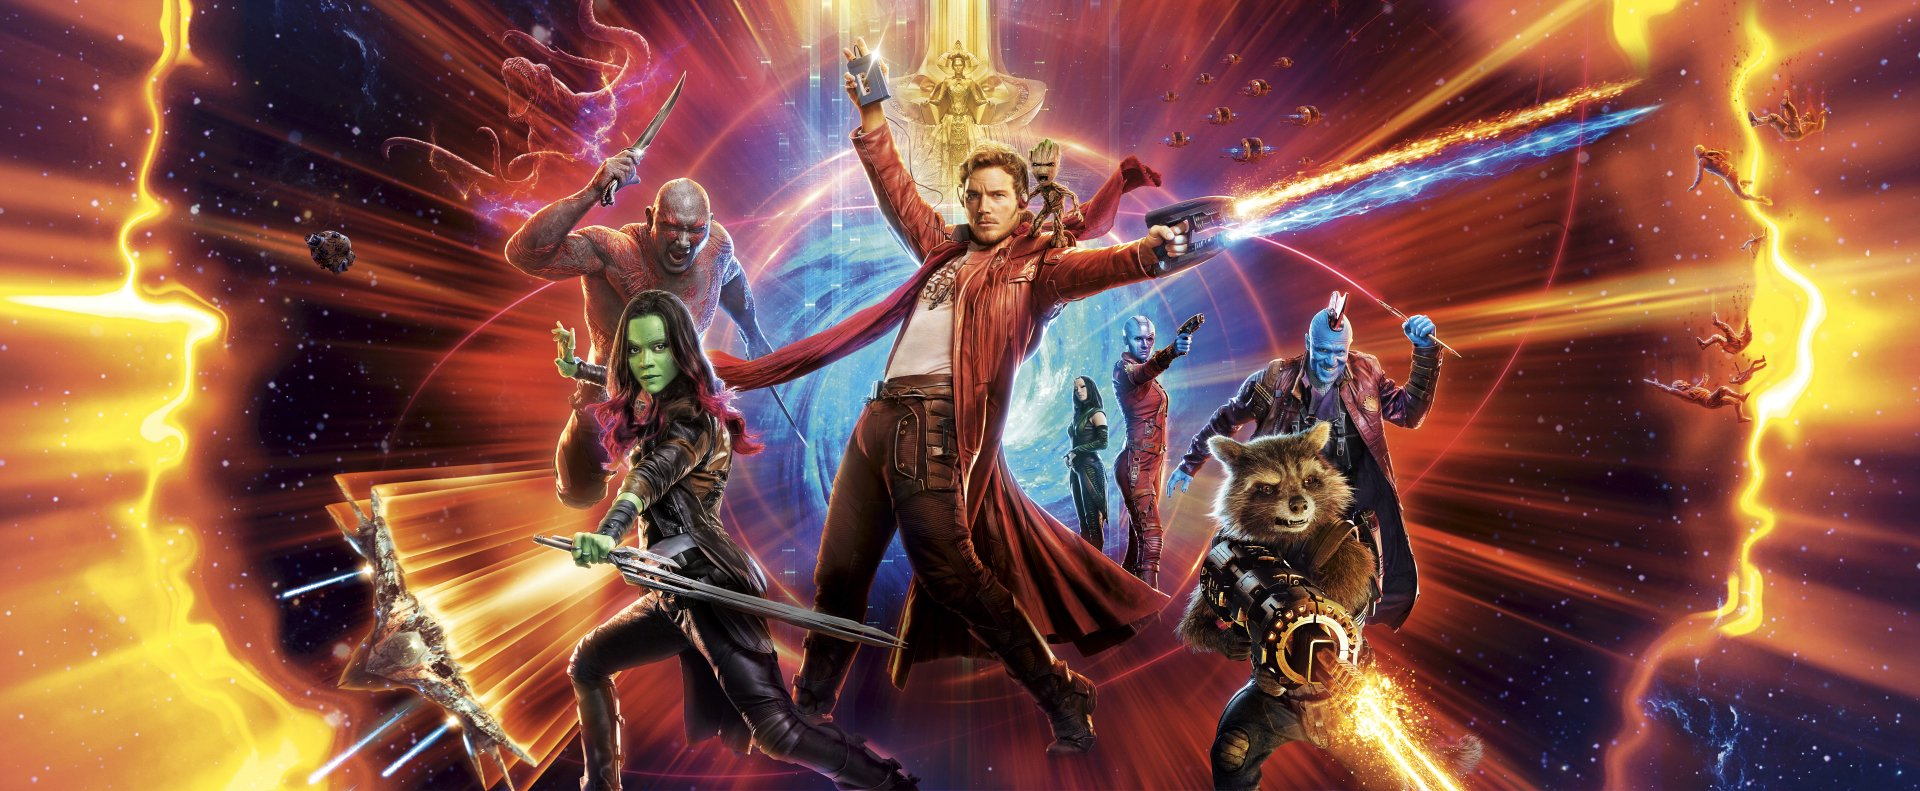 Film - Galaksinin Koruyucuları 2  Peter Quill Rocket Raccoon Gamora Drax The Destroyer Yondu Udonta Nebula (Guardians of the Galaxy) Mantis (Marvel Comics) Groot Chris Pratt Zoe Saldana Dave Bautista Michael Rooker Karen Gillan Marvel Comics Pom Klementieff Star Lord Duvarkağıdı